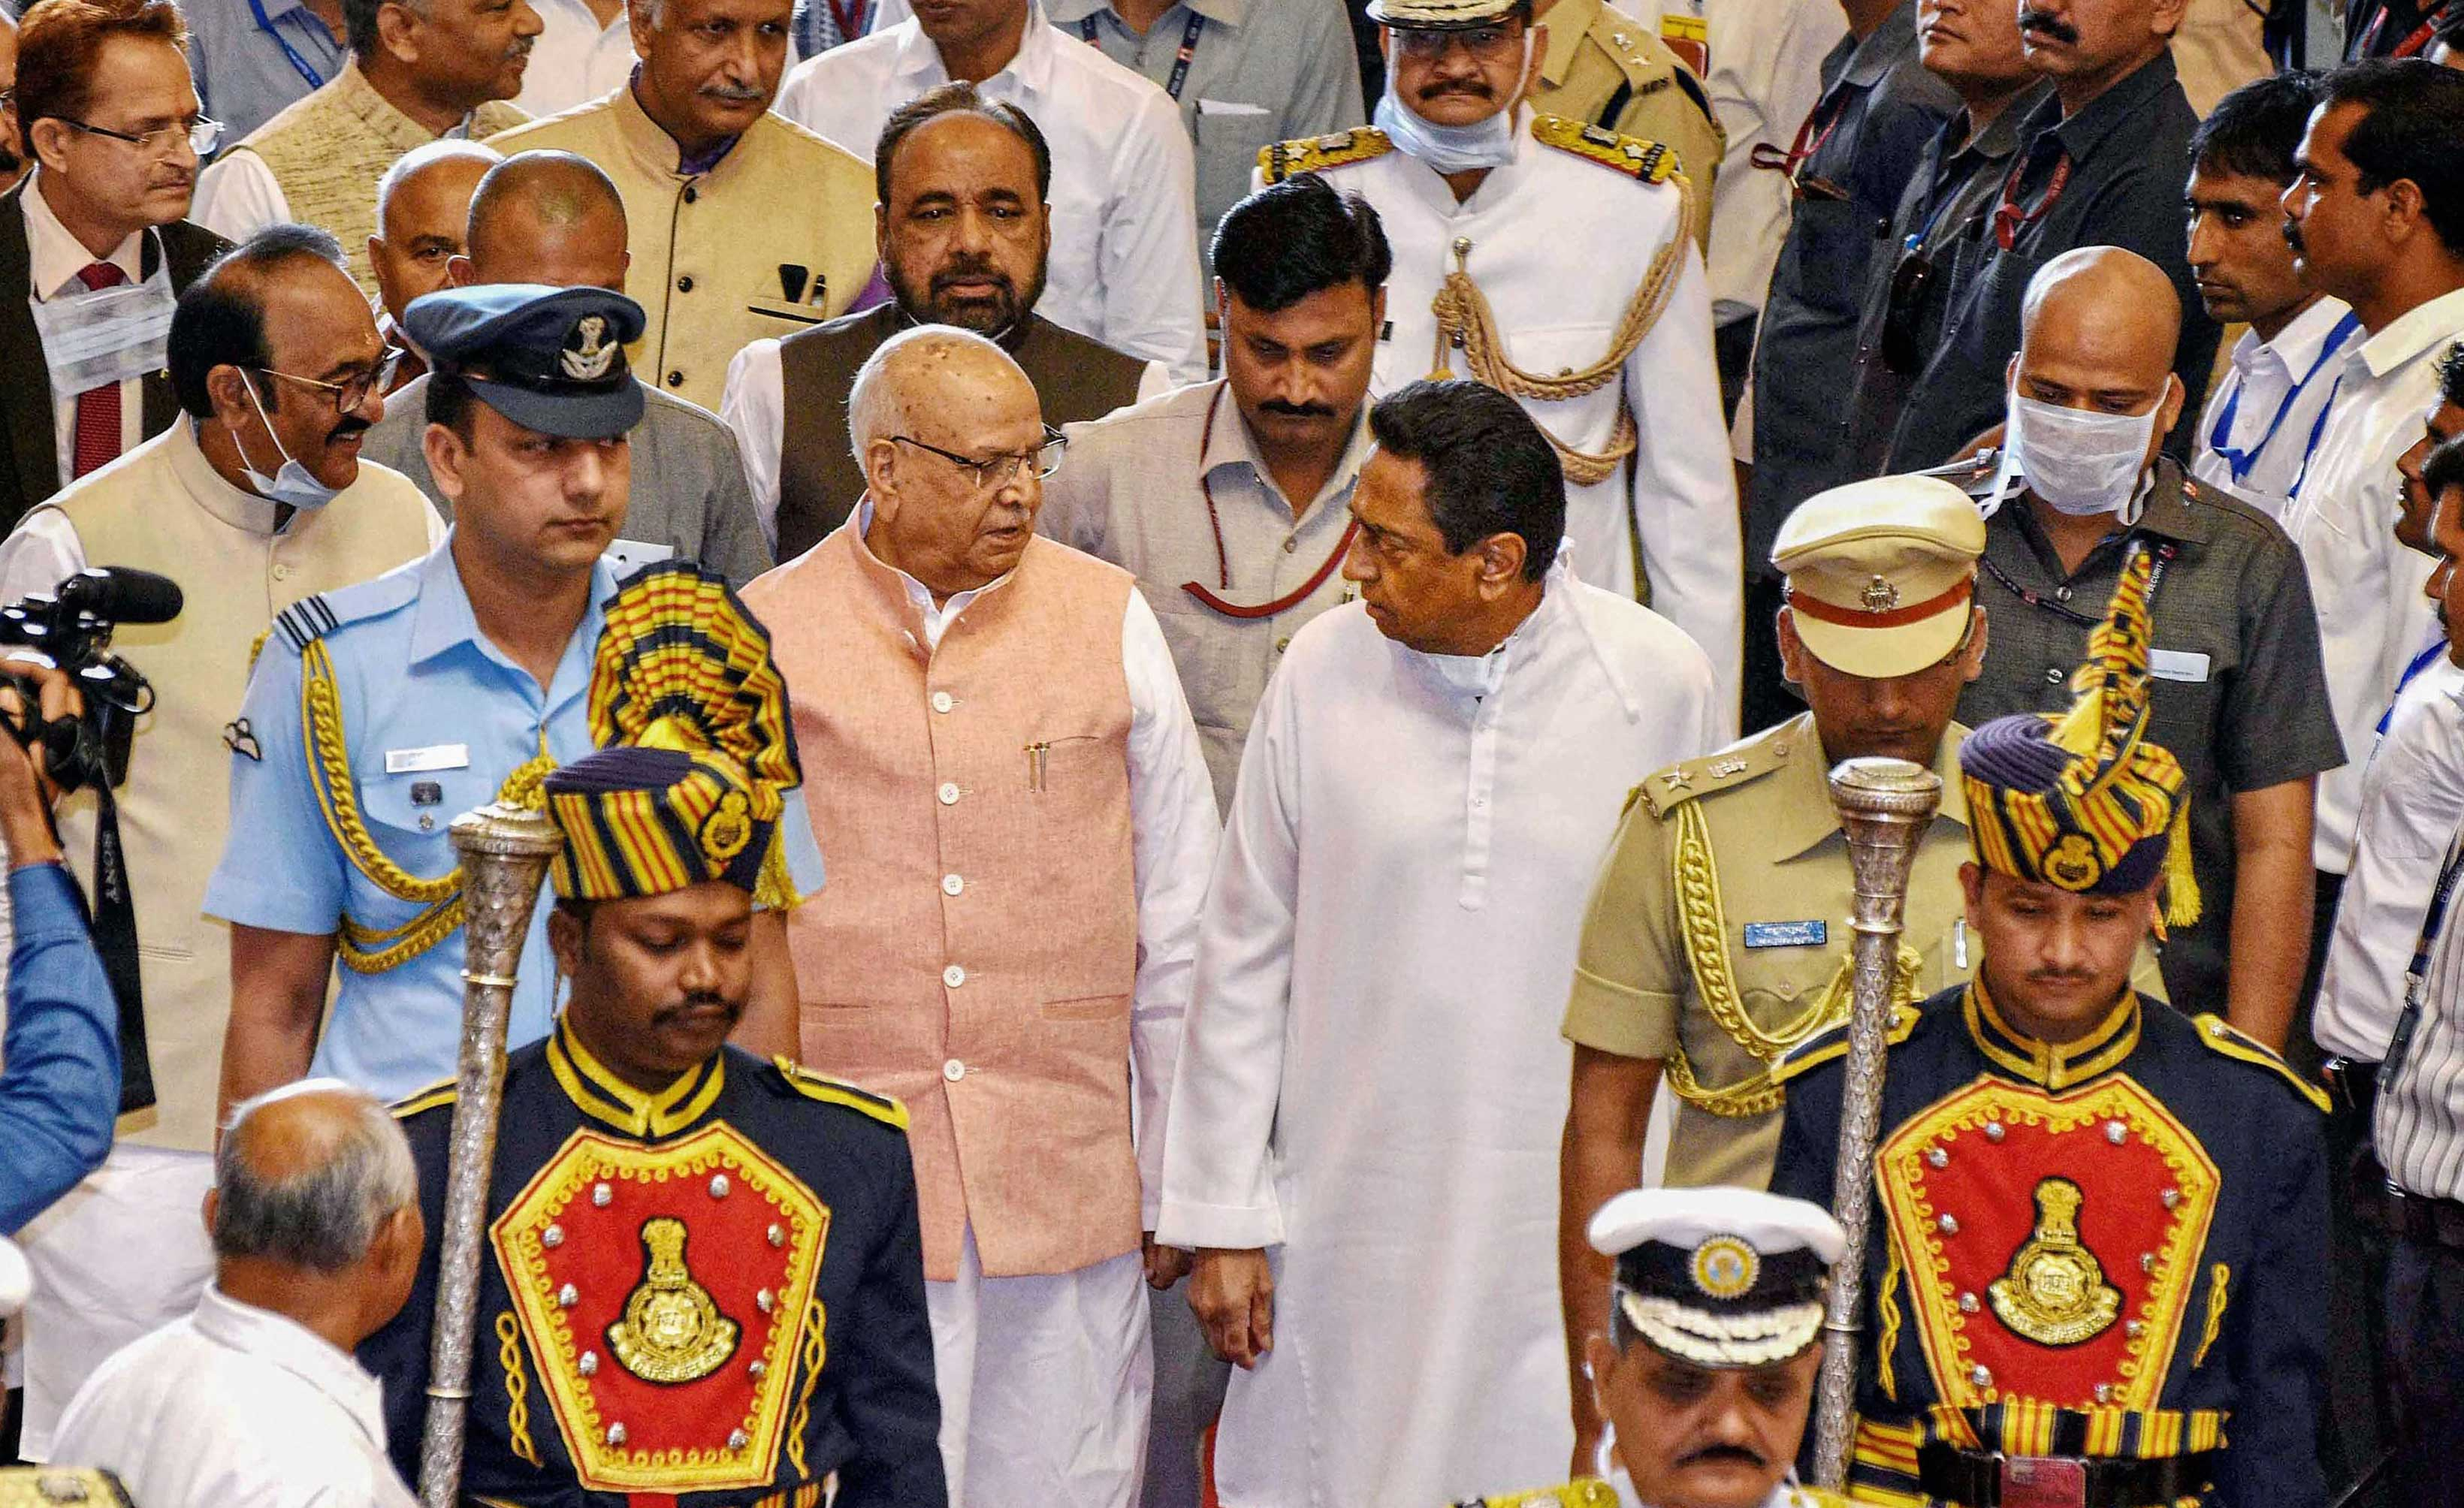 Madhya Pradesh governor Lalji Tandon along with chief minister Kamal Nath during the budget session of state assembly in Bhopal on Monday.